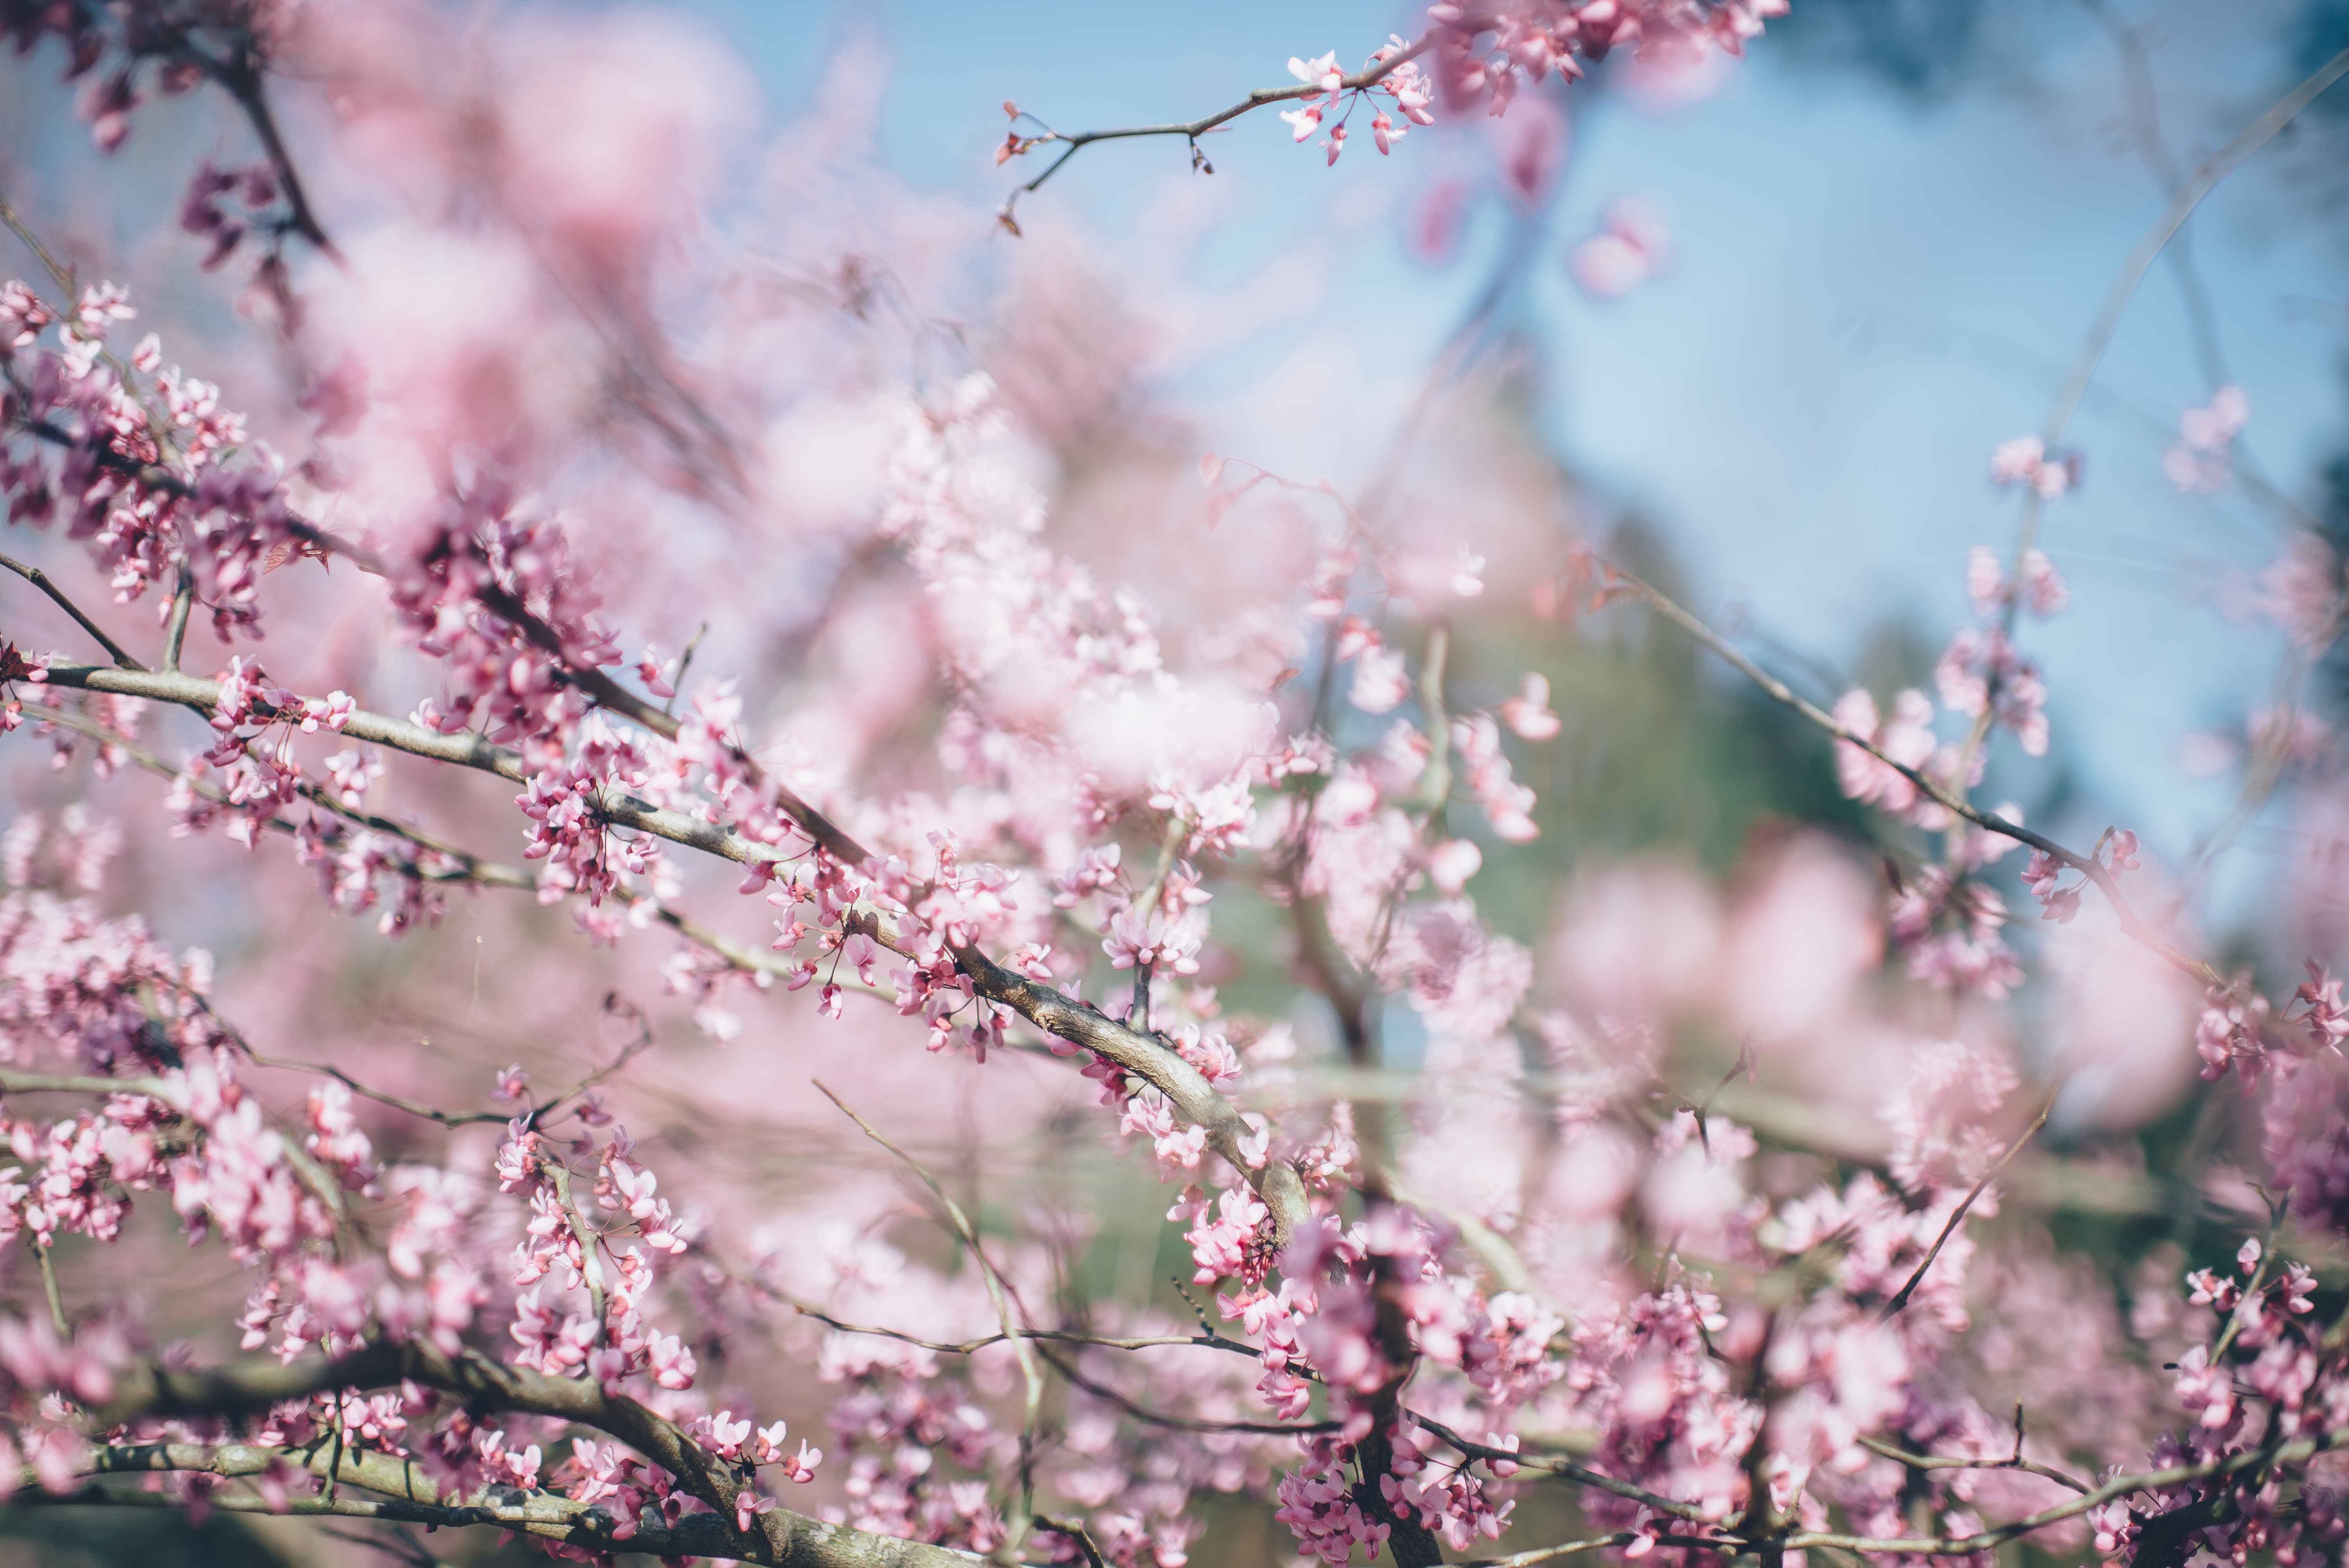 Branches with pink cherry blossom close up with blue sky background in Spring